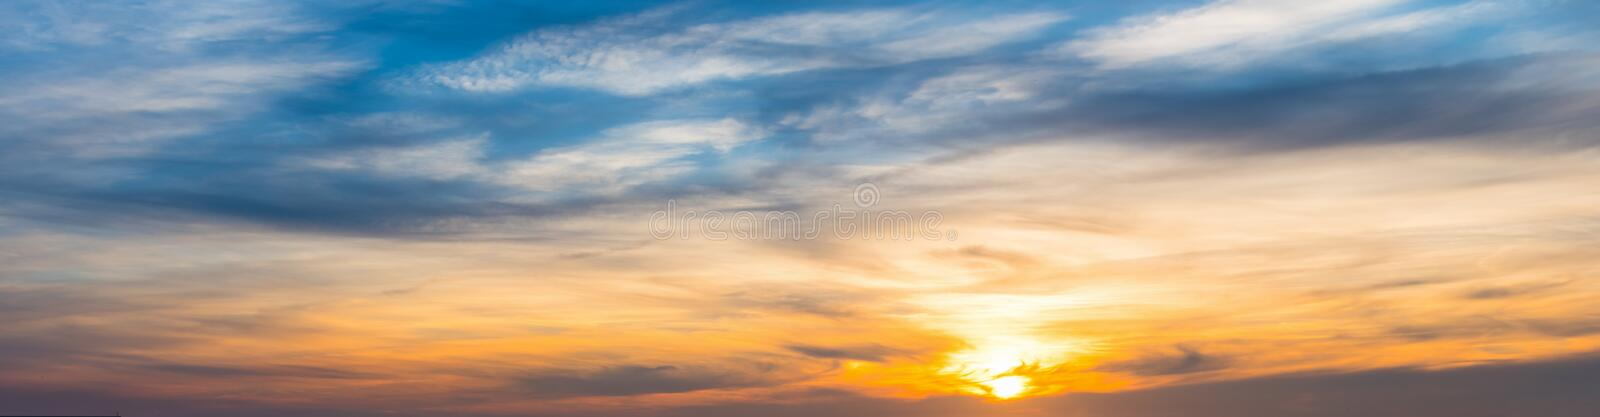 Orange and blue sky at sunset royalty free stock photography